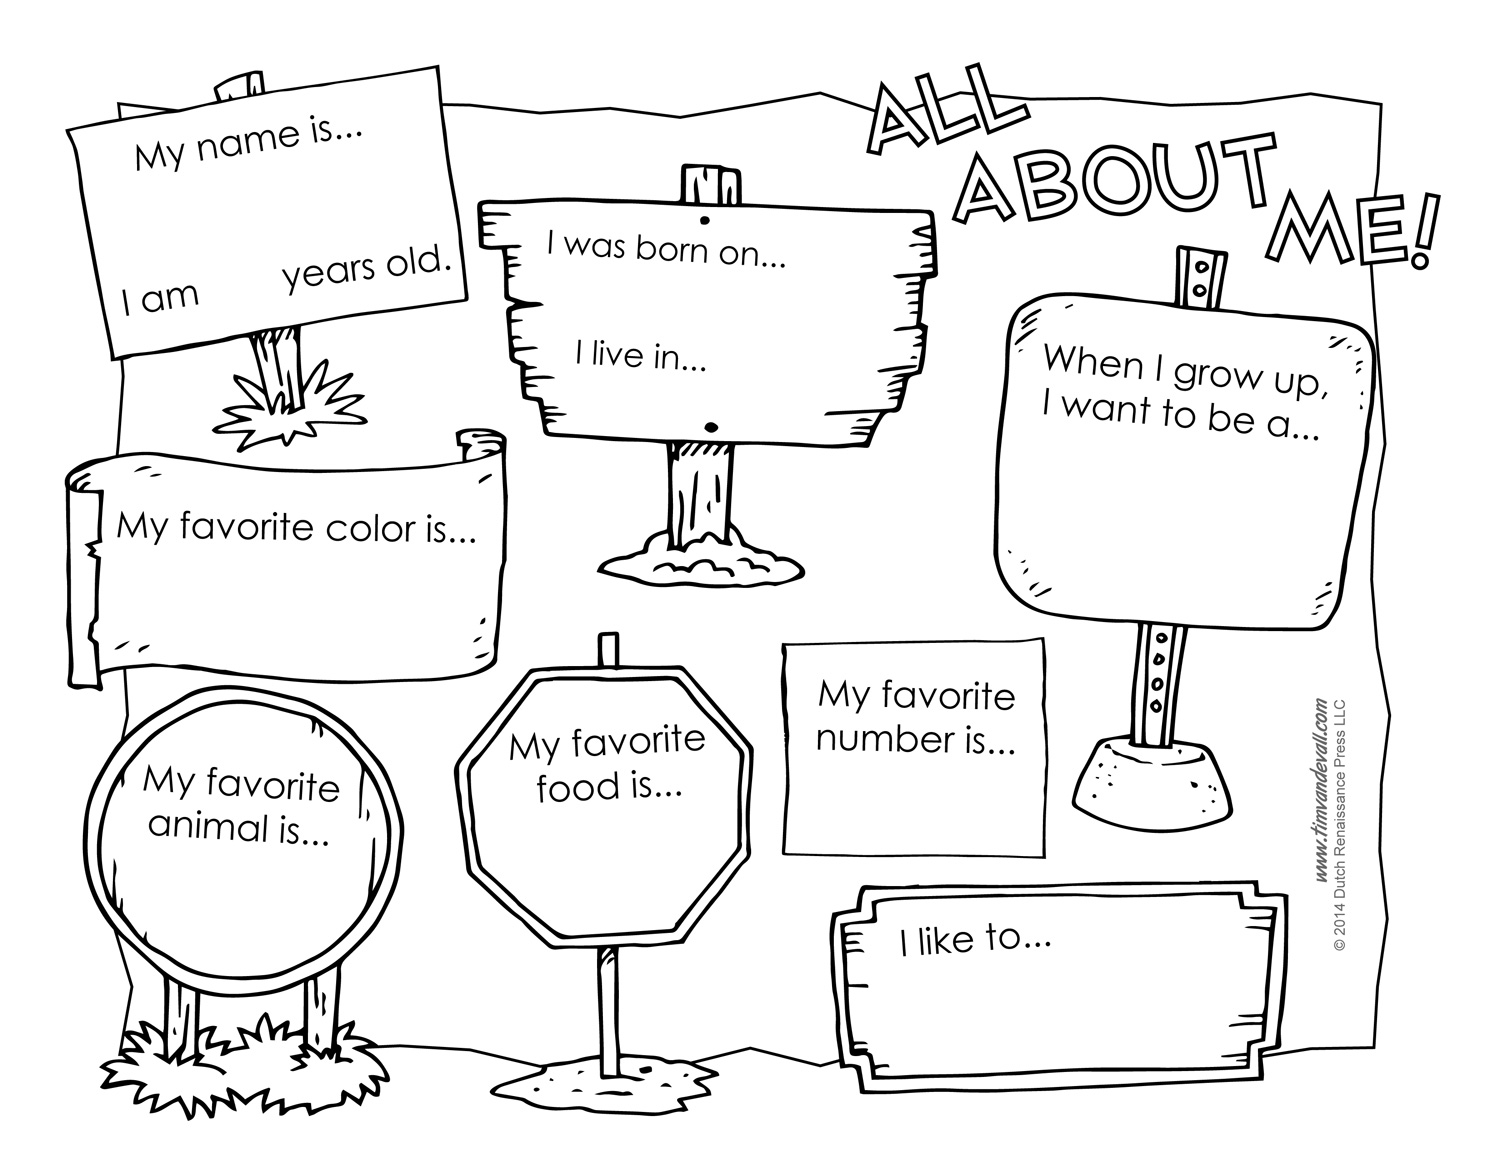 Worksheets All About Me Printable Worksheet all about me worksheet tims printables worksheet